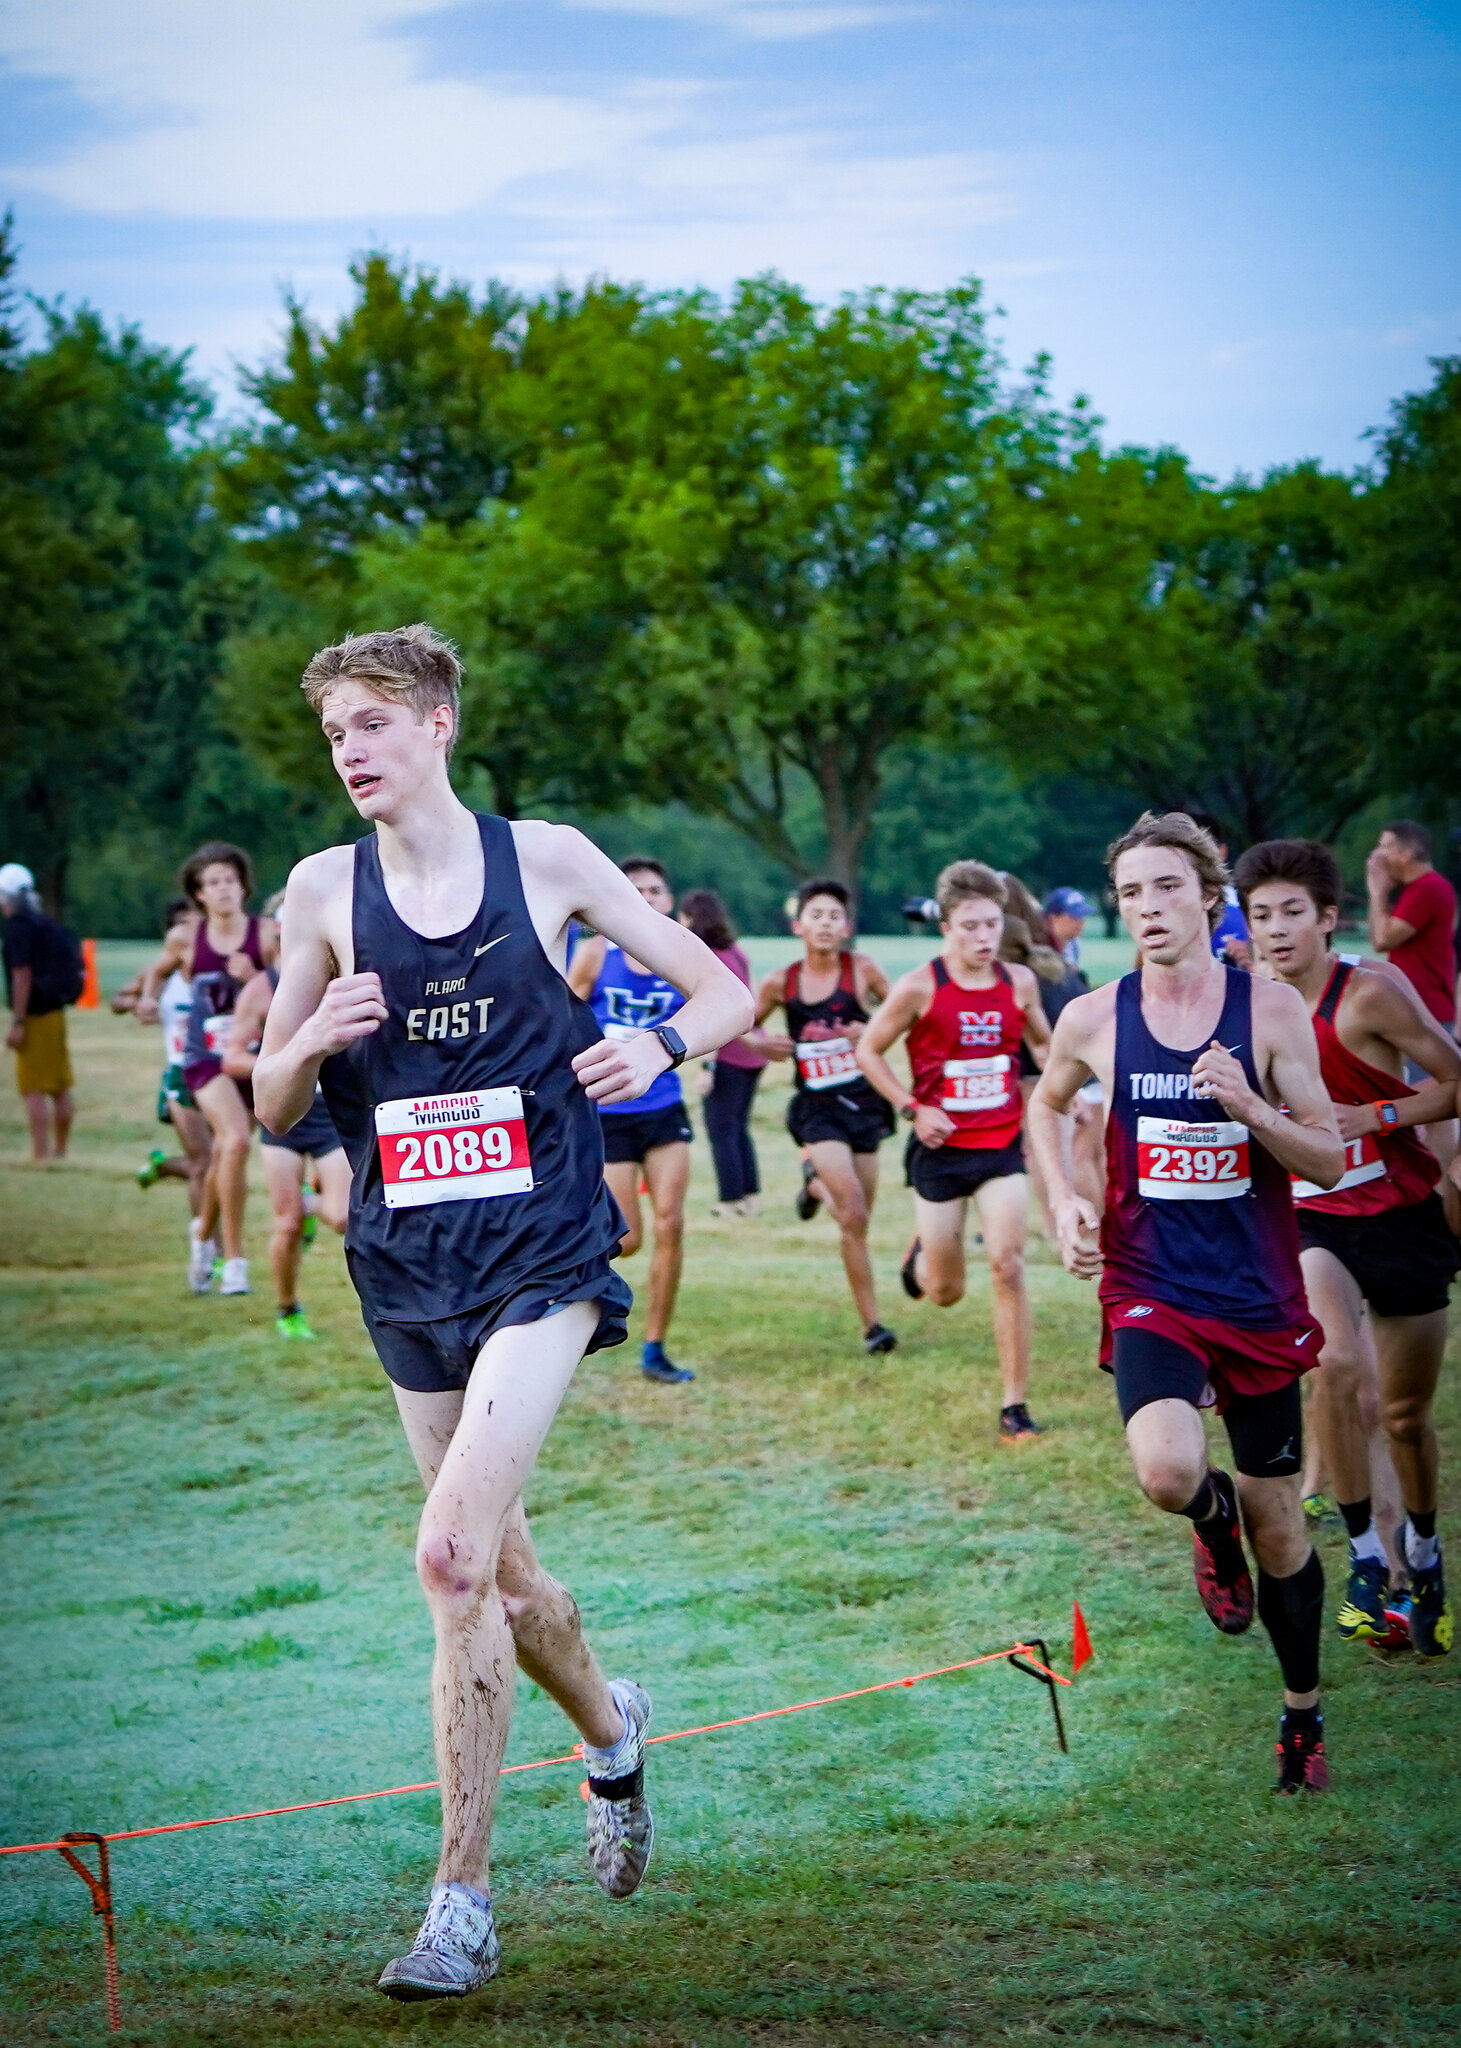 PESH CC - Plano East Senior High School Cross Country